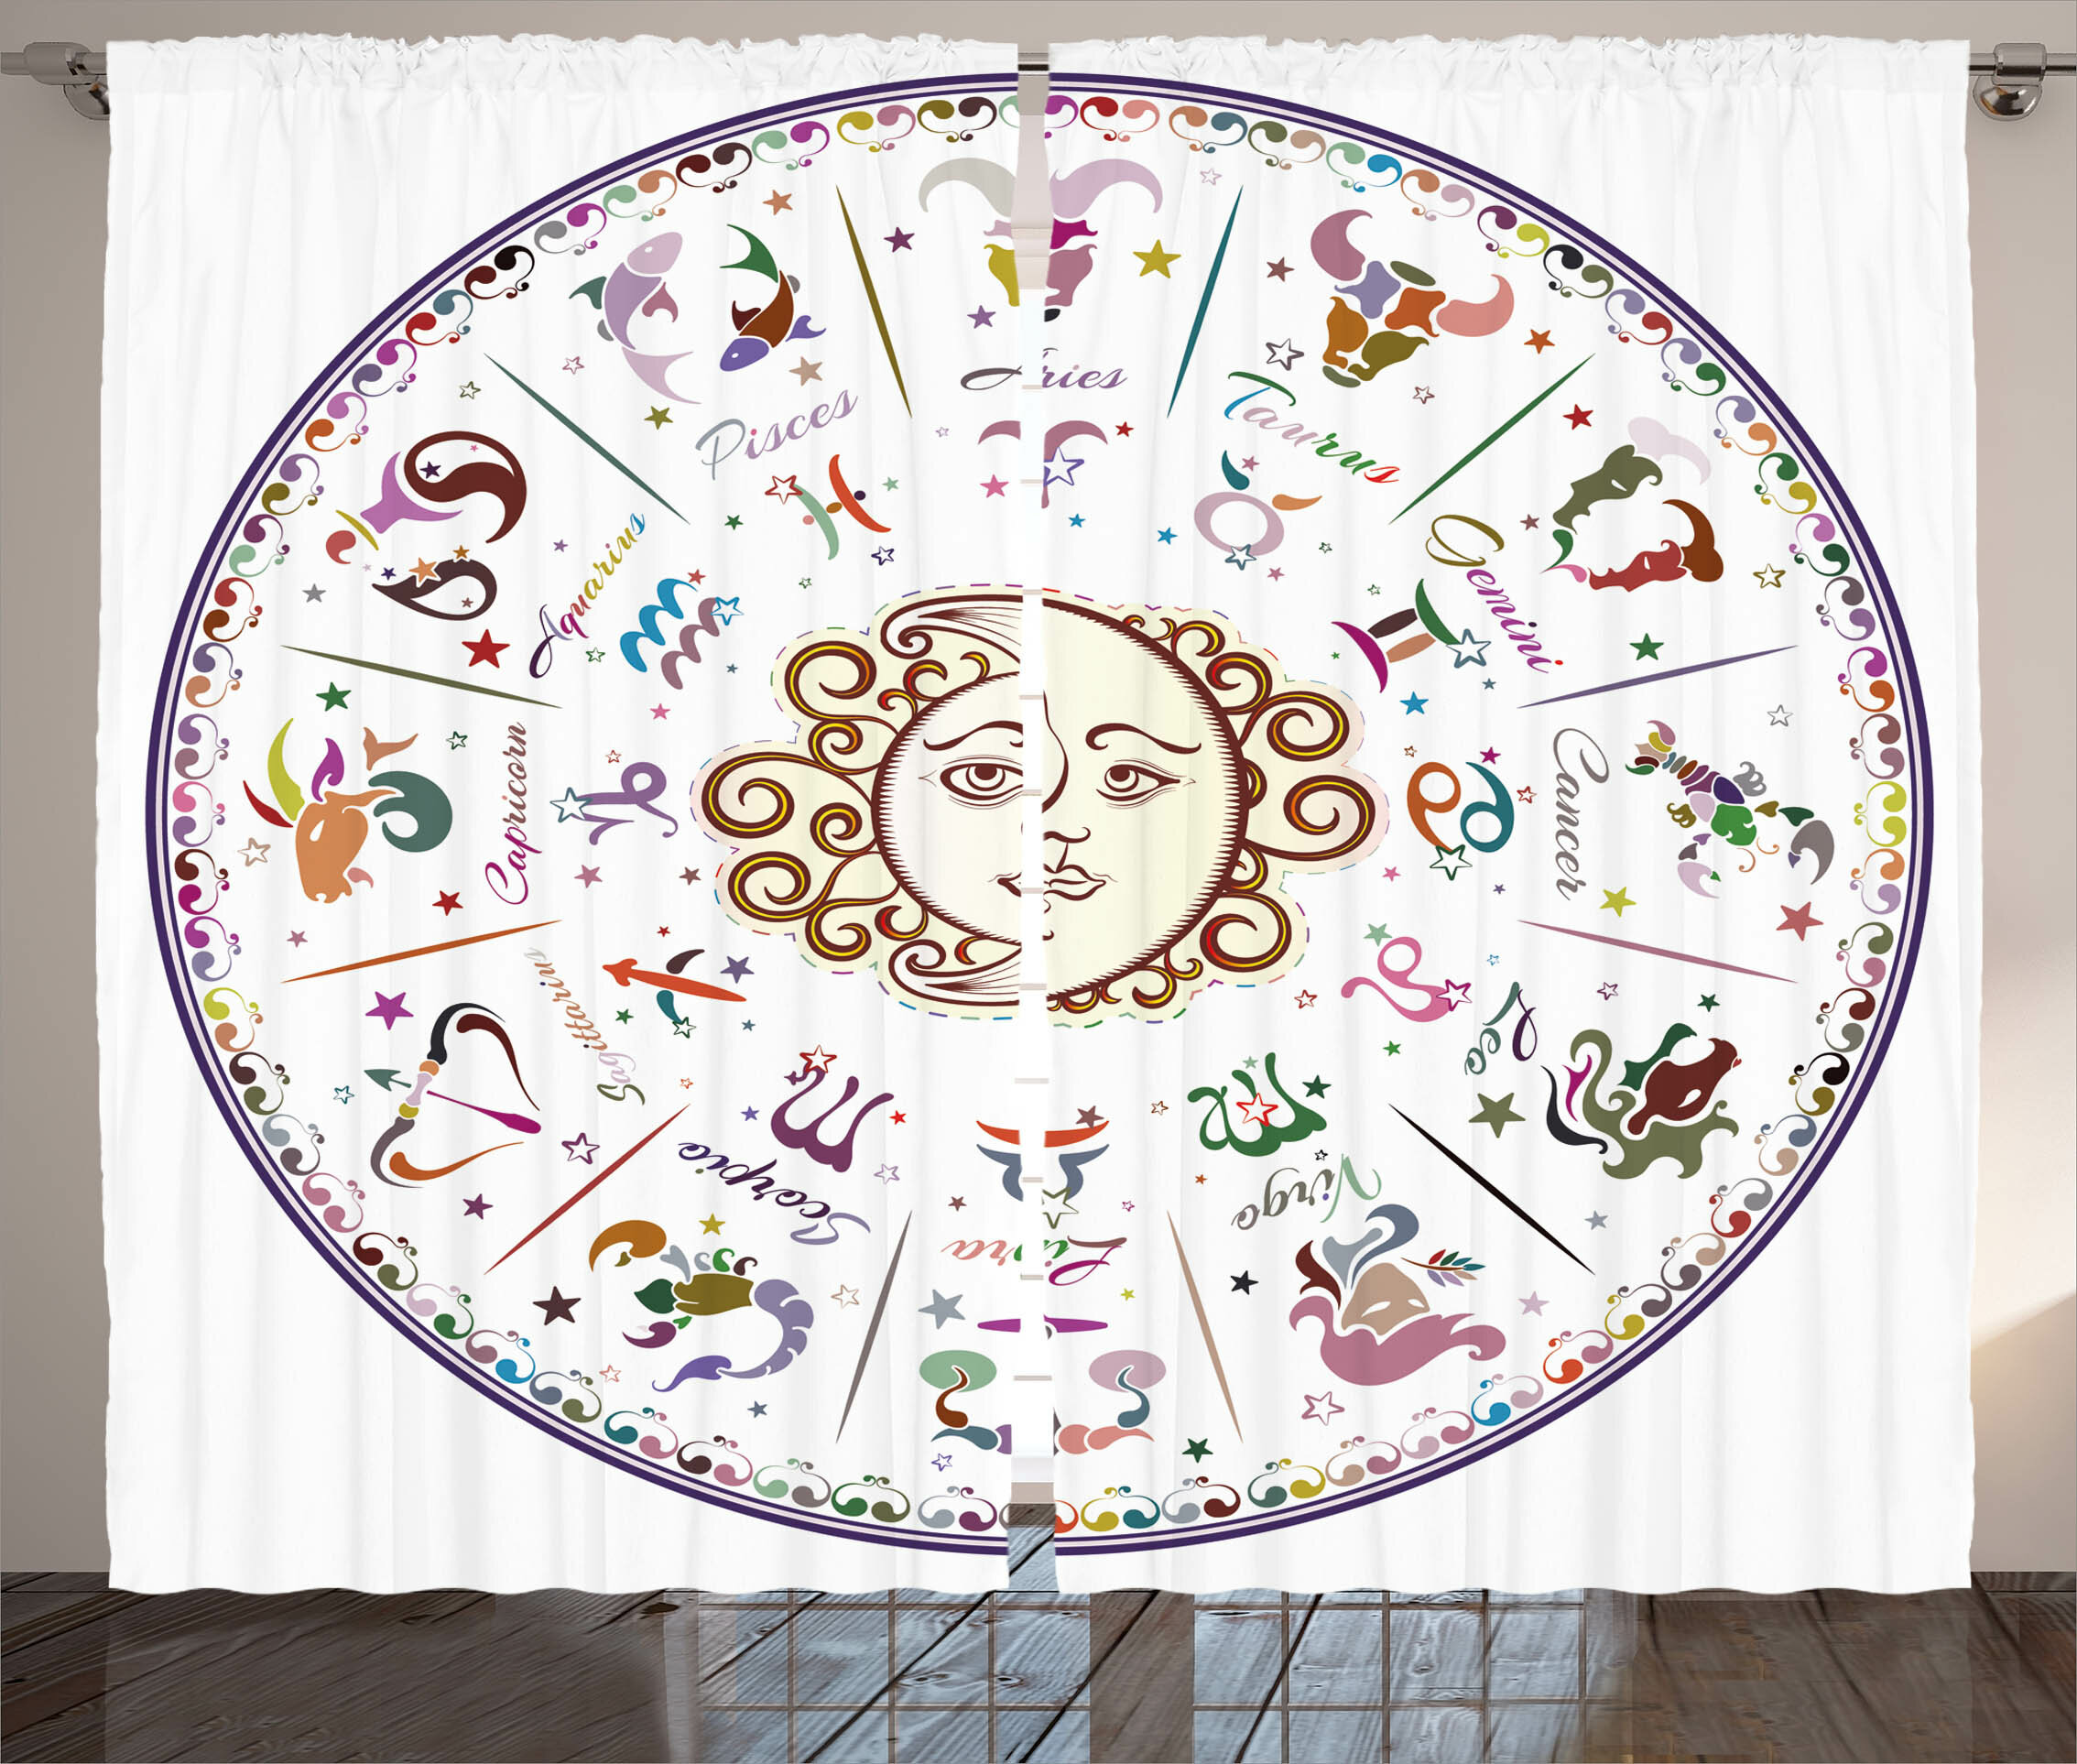 East Urban Home Zodiac Astrology Map with Descriptions Forecast for on